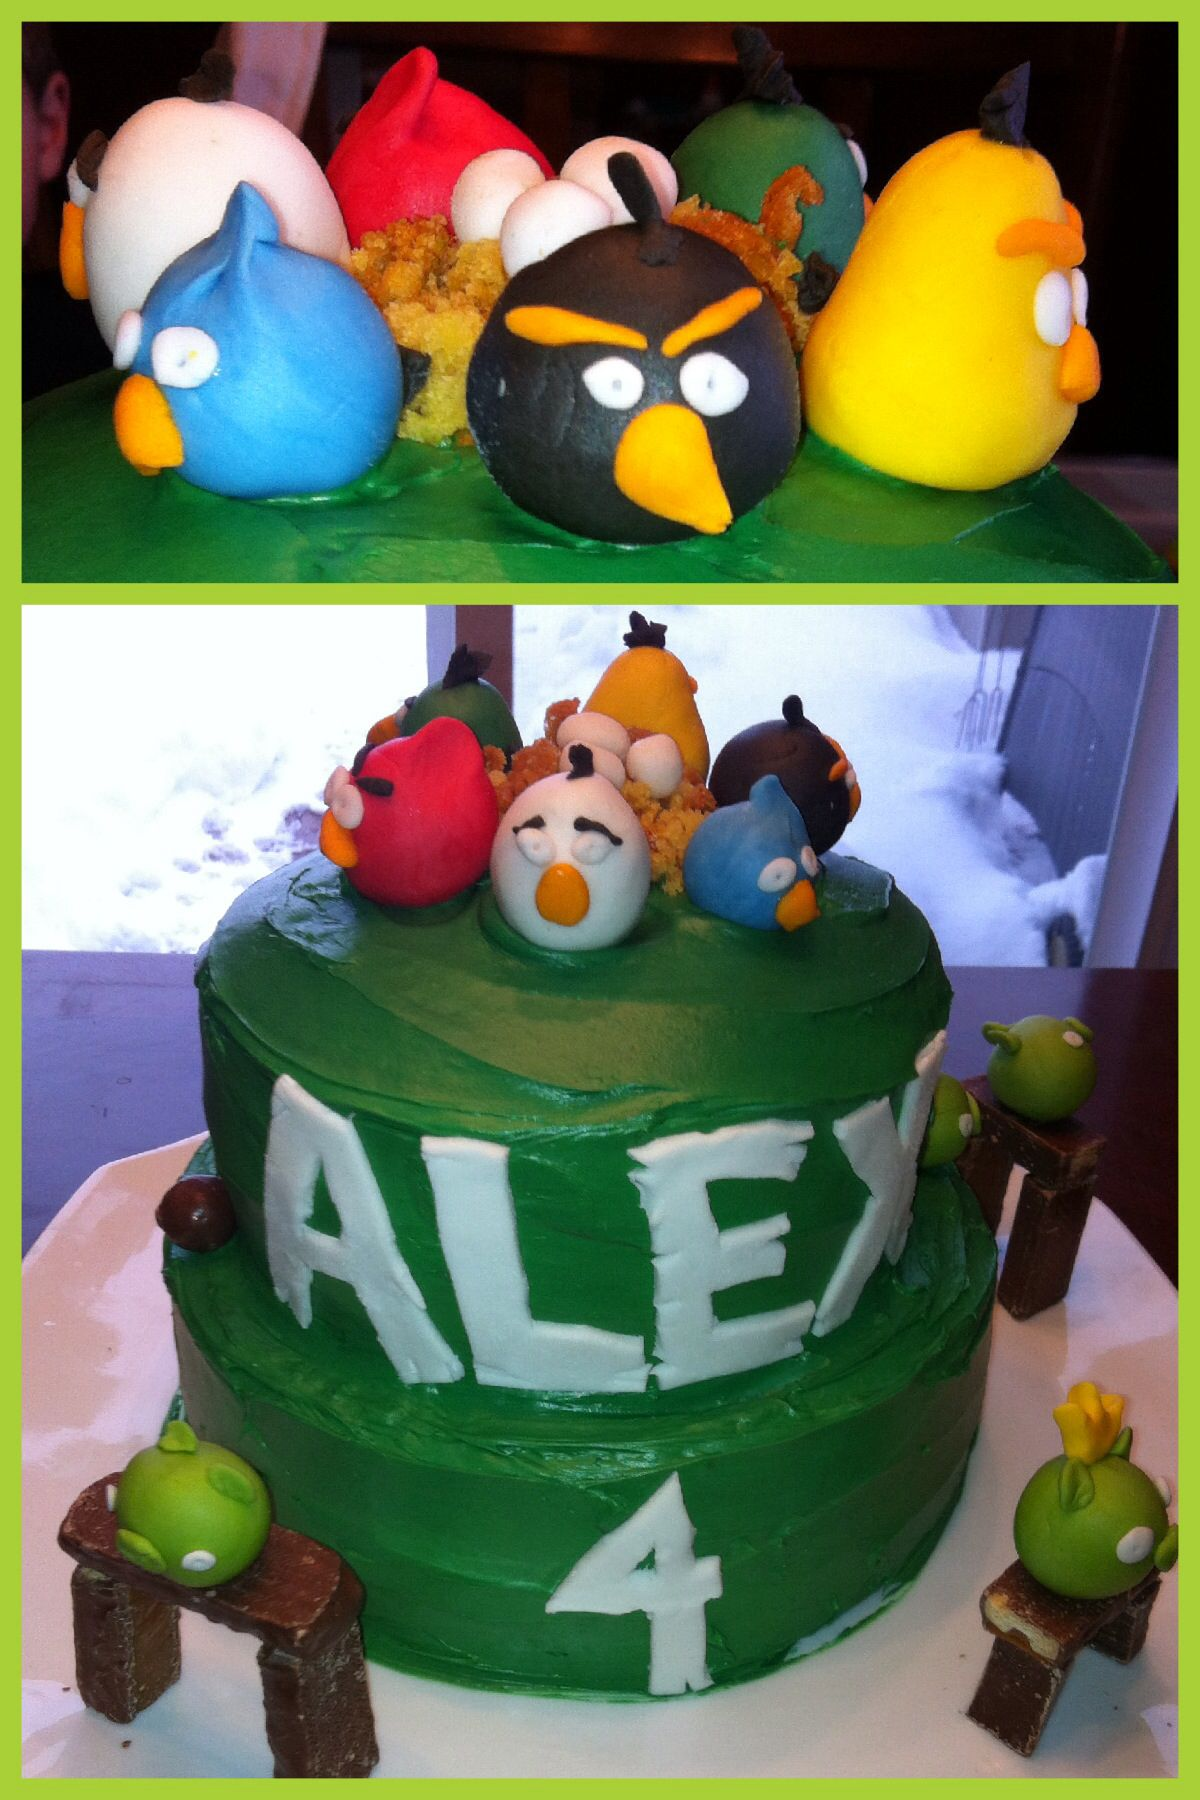 Angry Birds cake fondant birds and piggies Twix and fun size kit